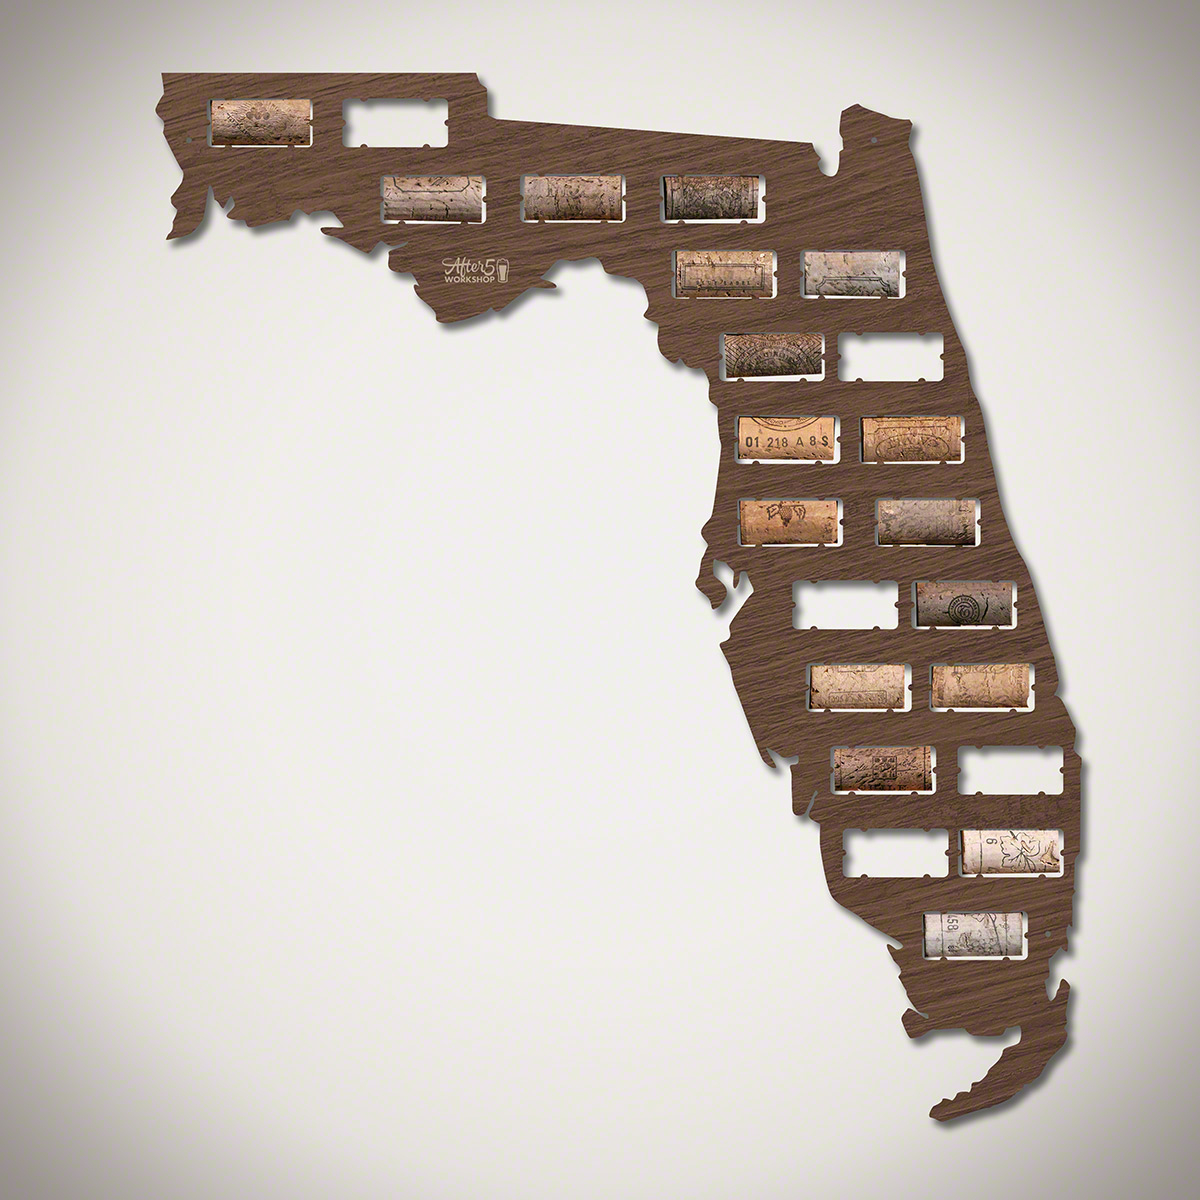 Florida Wineries Map | Www.topsimages - Florida Winery Map